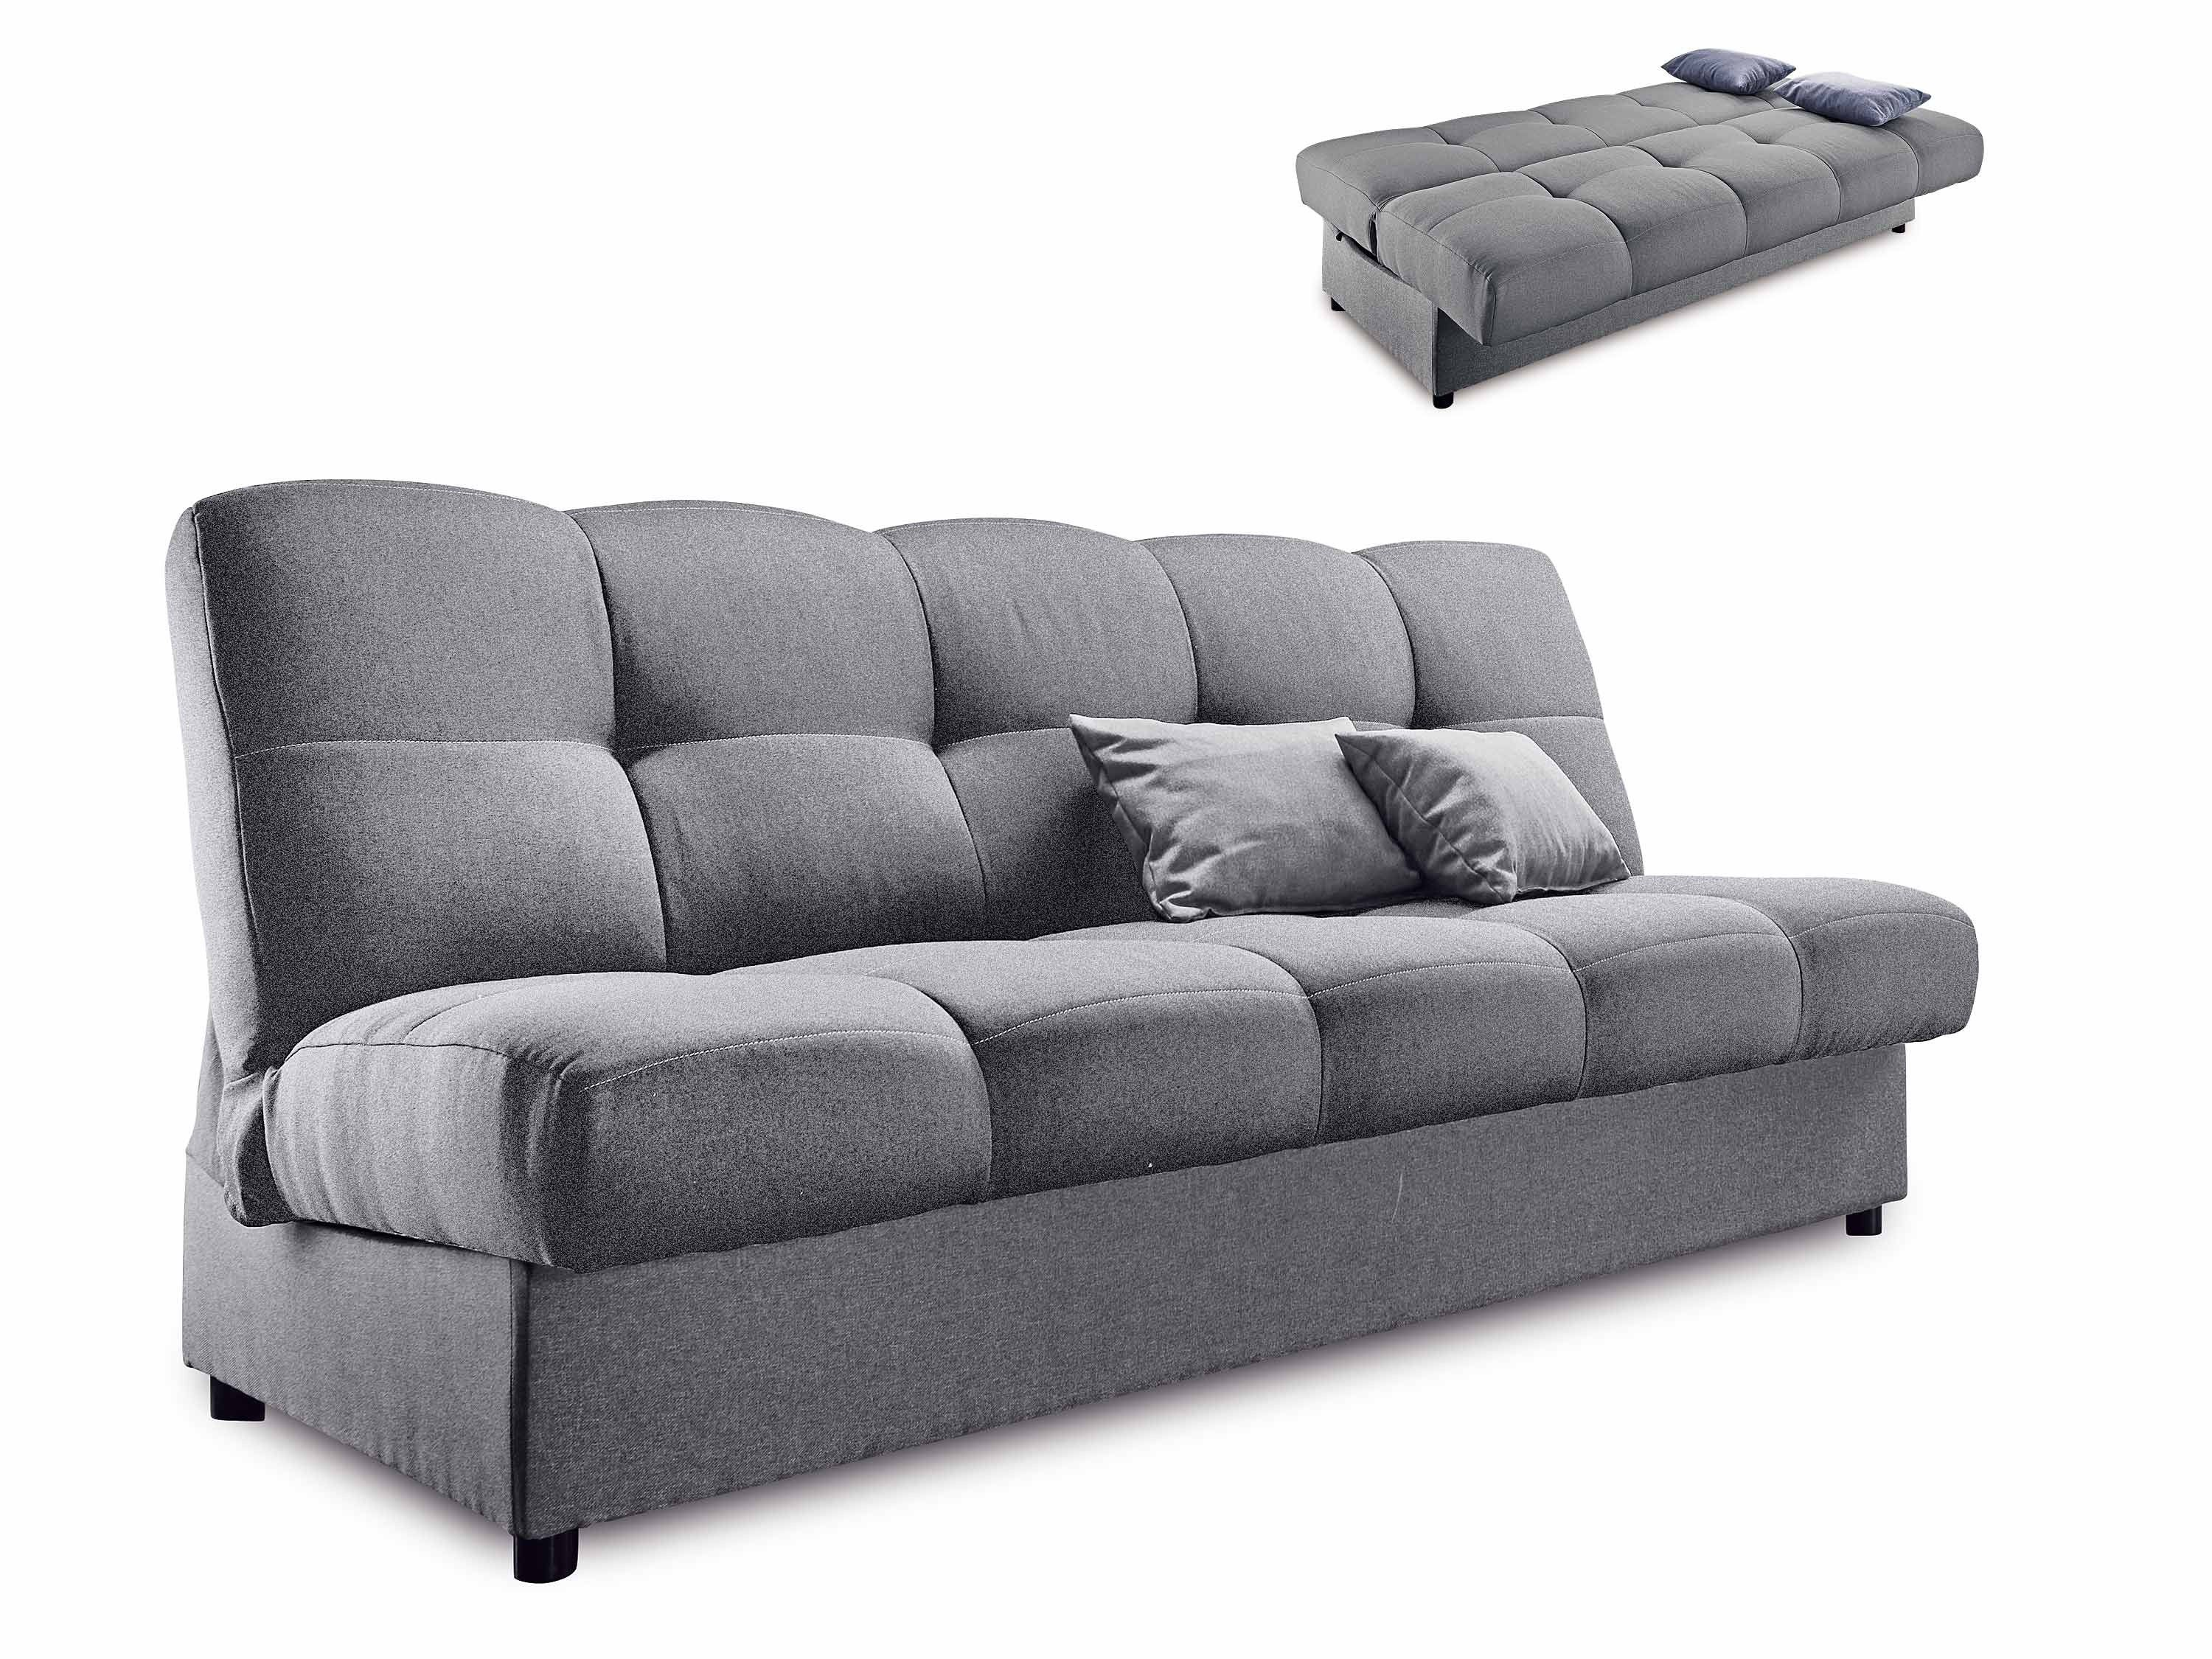 gnstige schlafsofas unter 100 euro beautiful schlafsofa. Black Bedroom Furniture Sets. Home Design Ideas